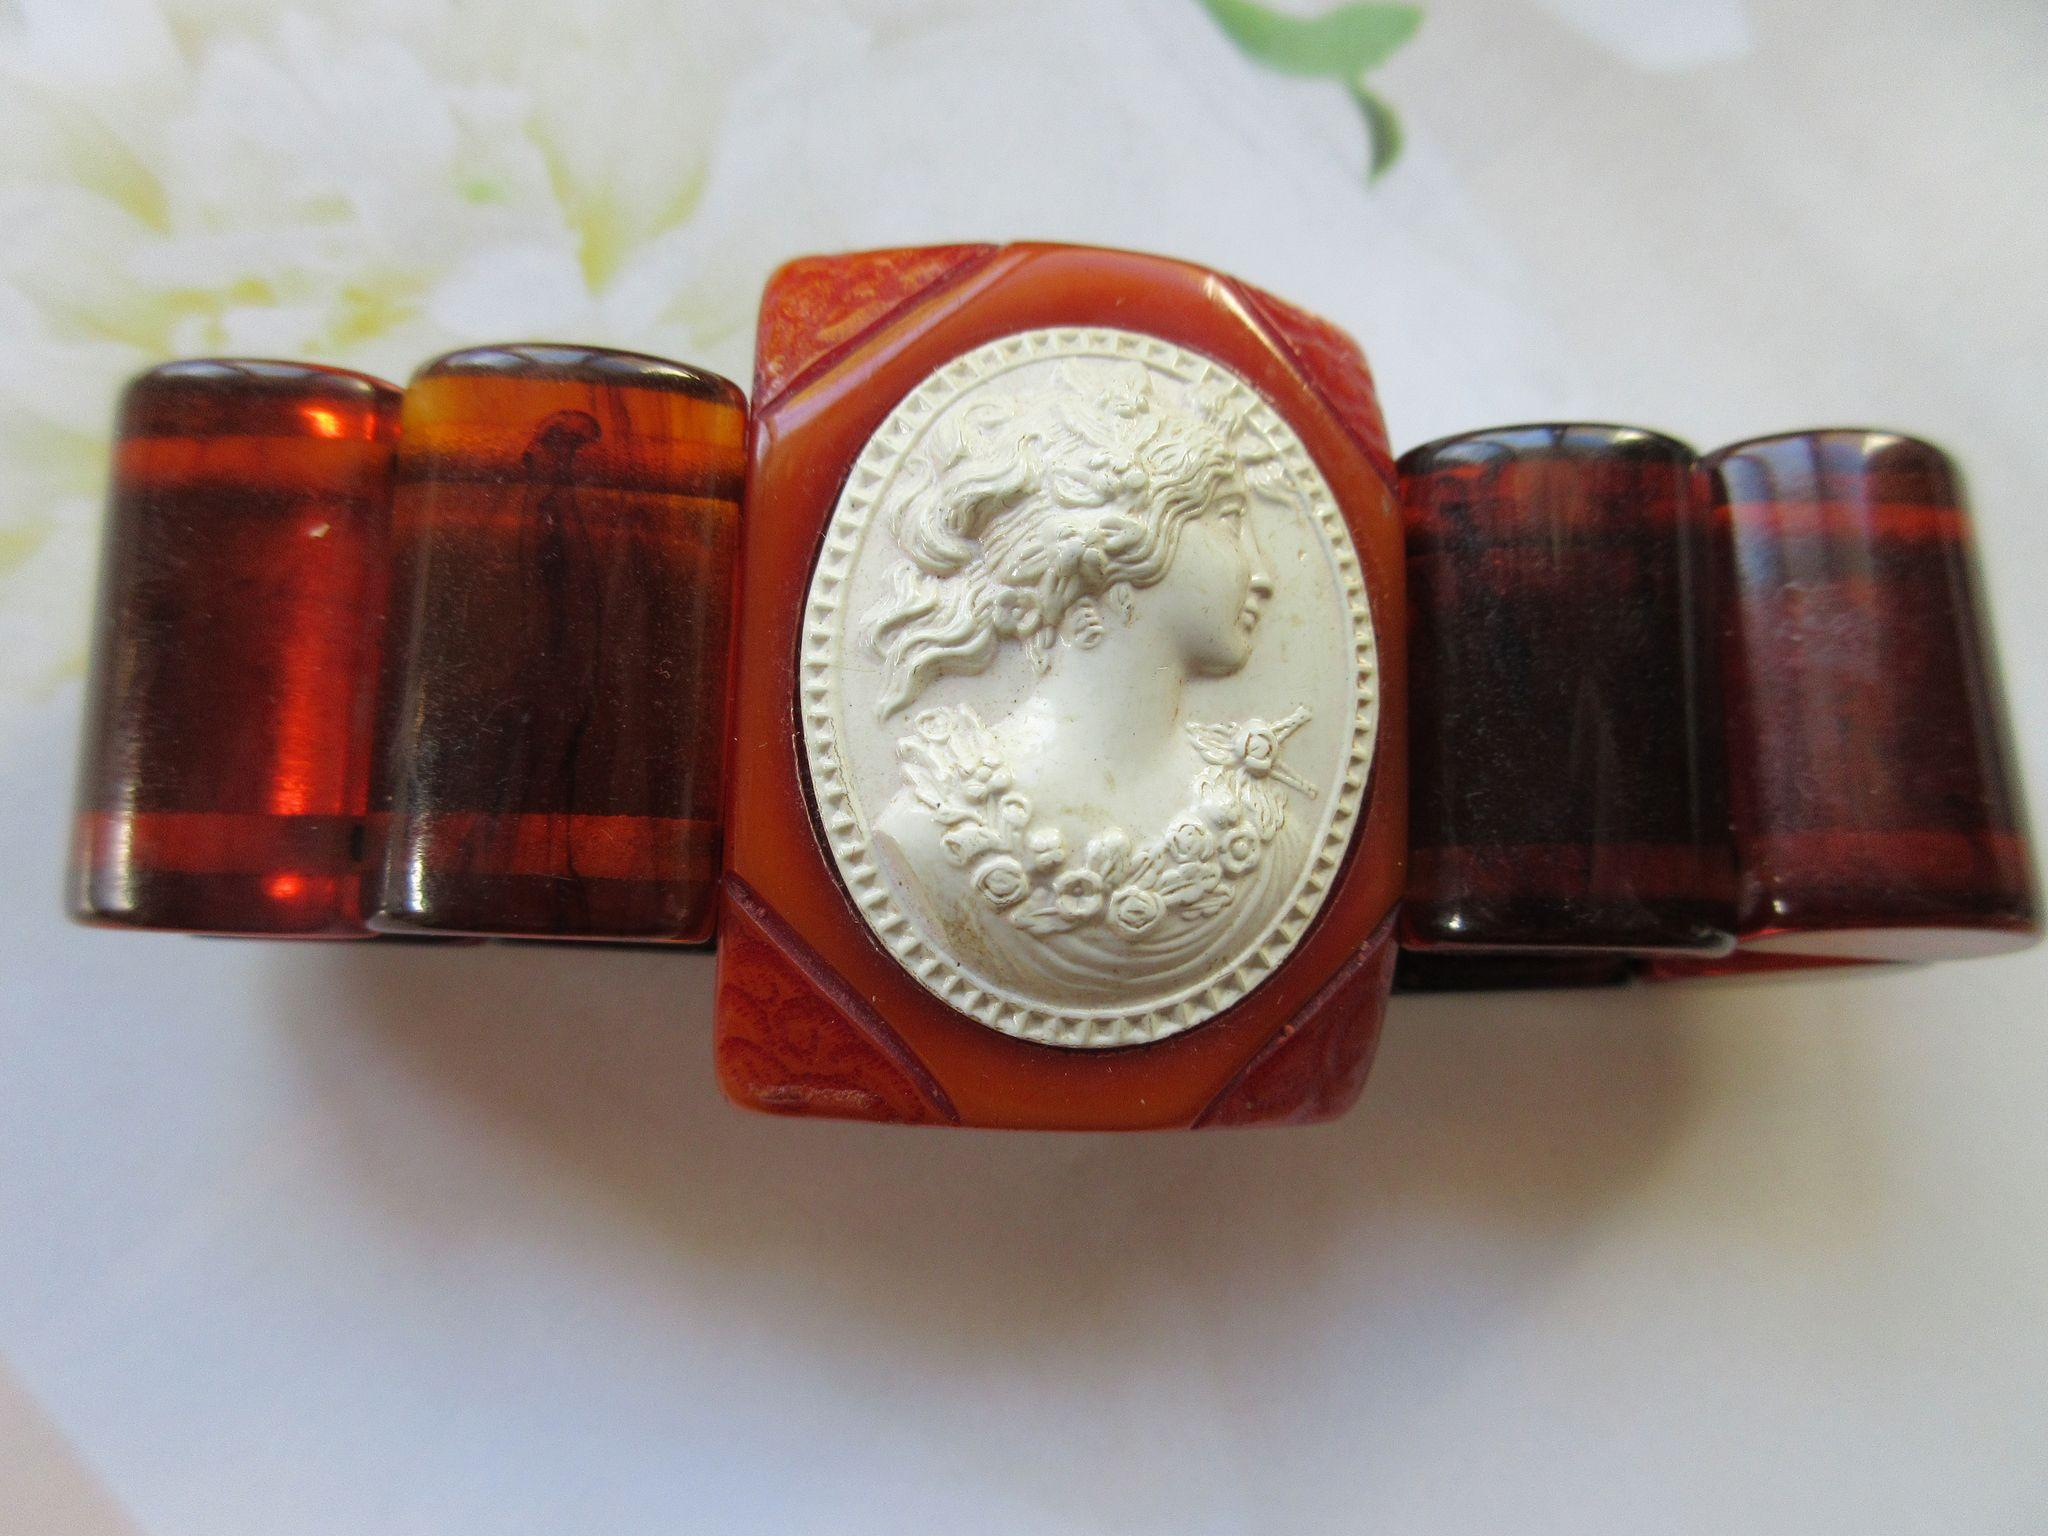 Vintage Bakelite Bracelet with Celluloid Cameo